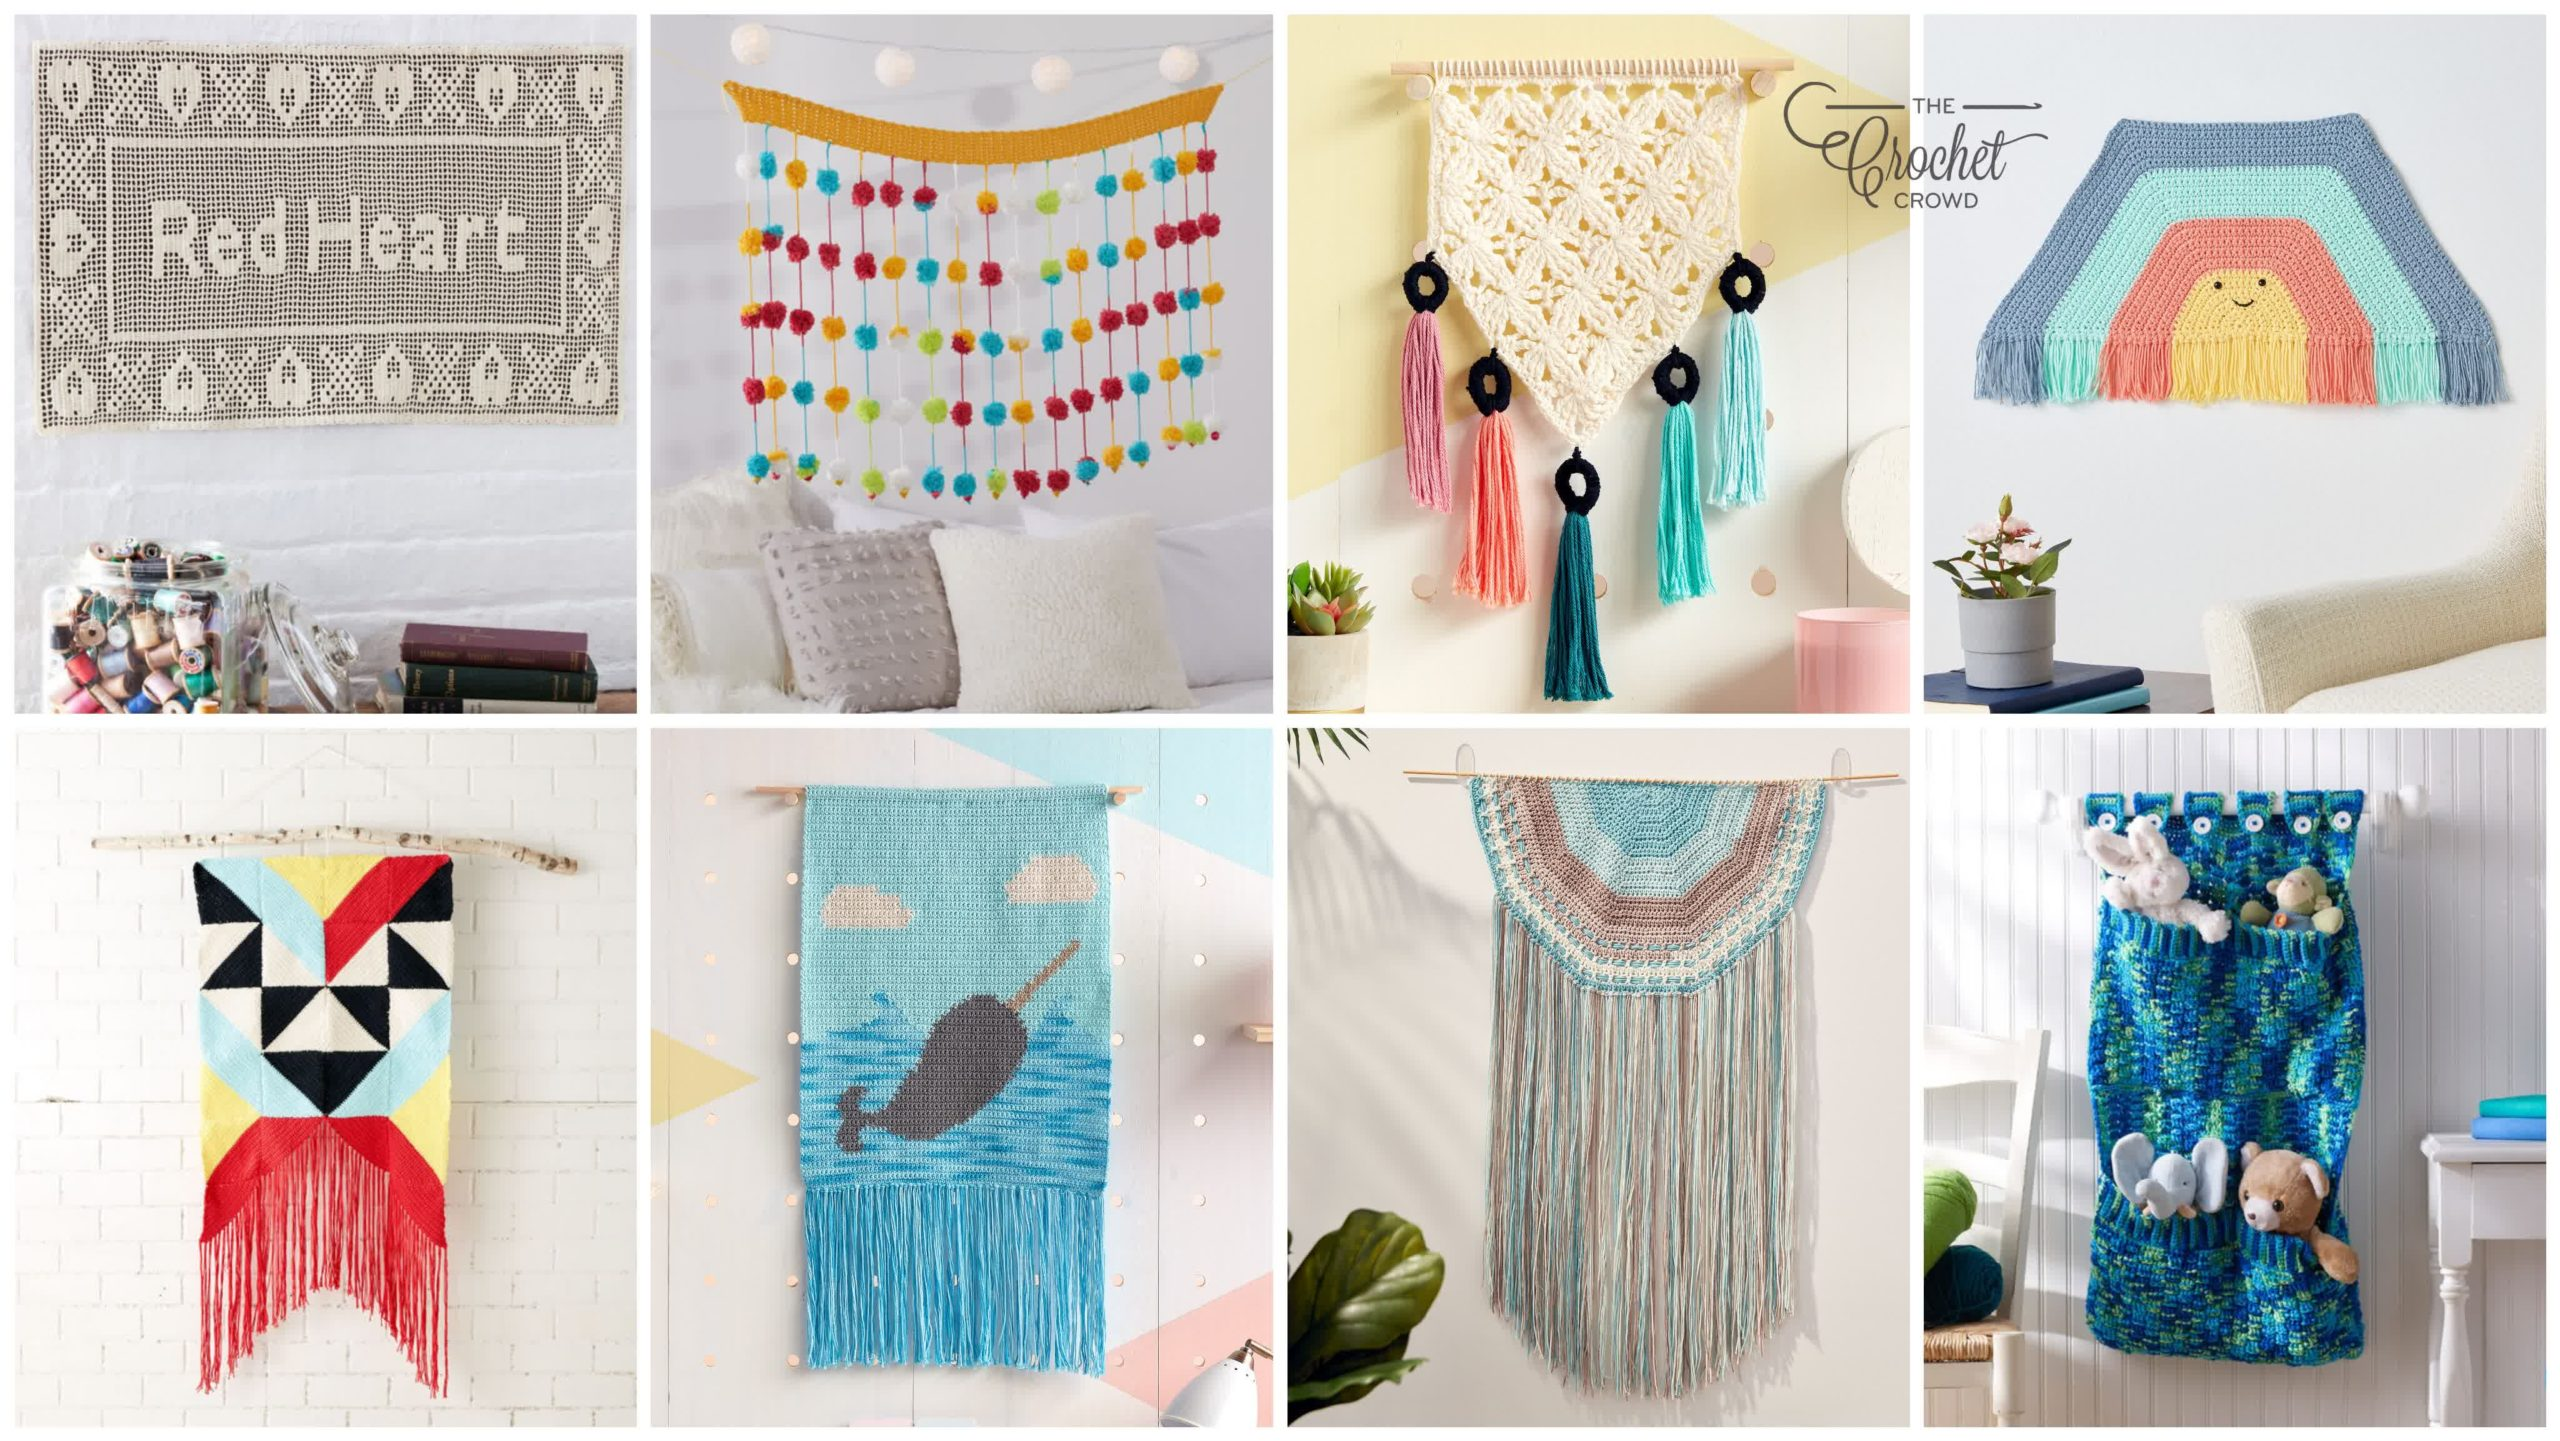 8 Decorative Crochet Wall Hanging Patterns